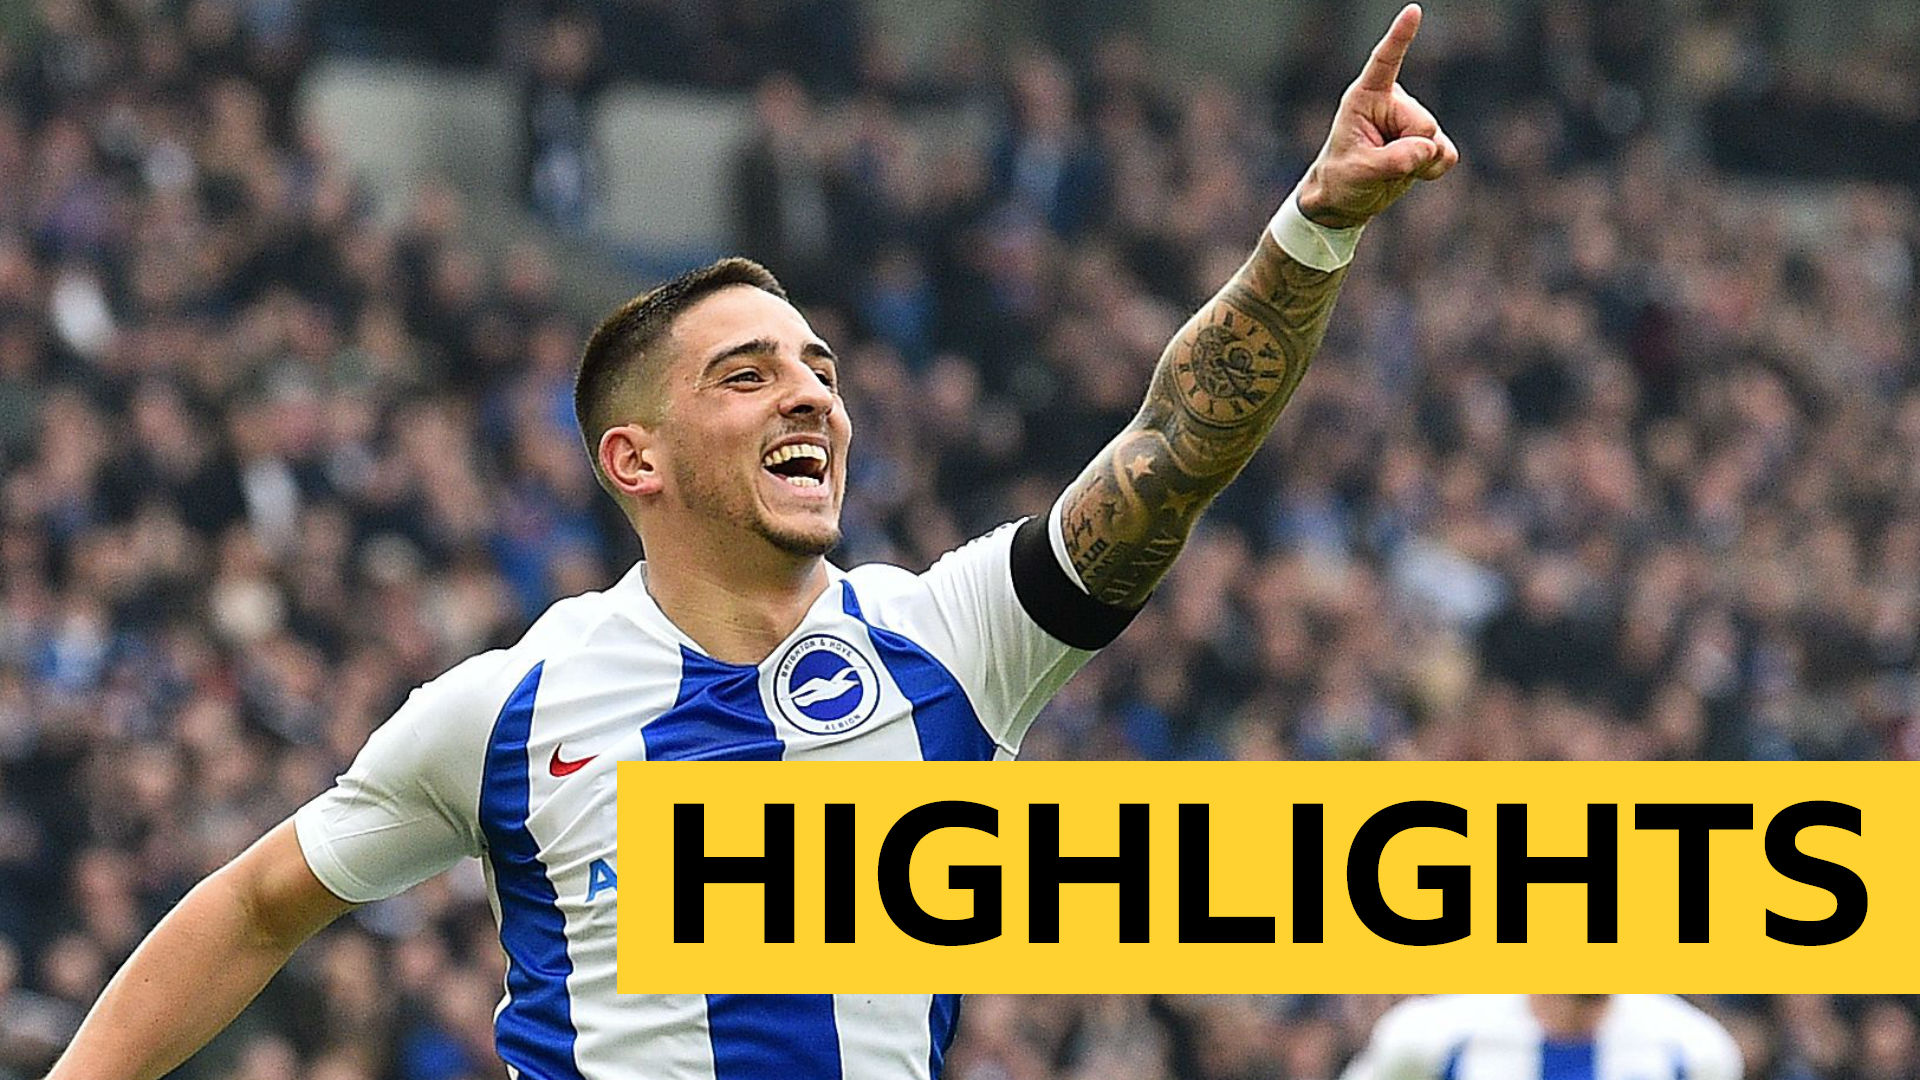 FA Cup: Brighton 2-1 Derby highlights